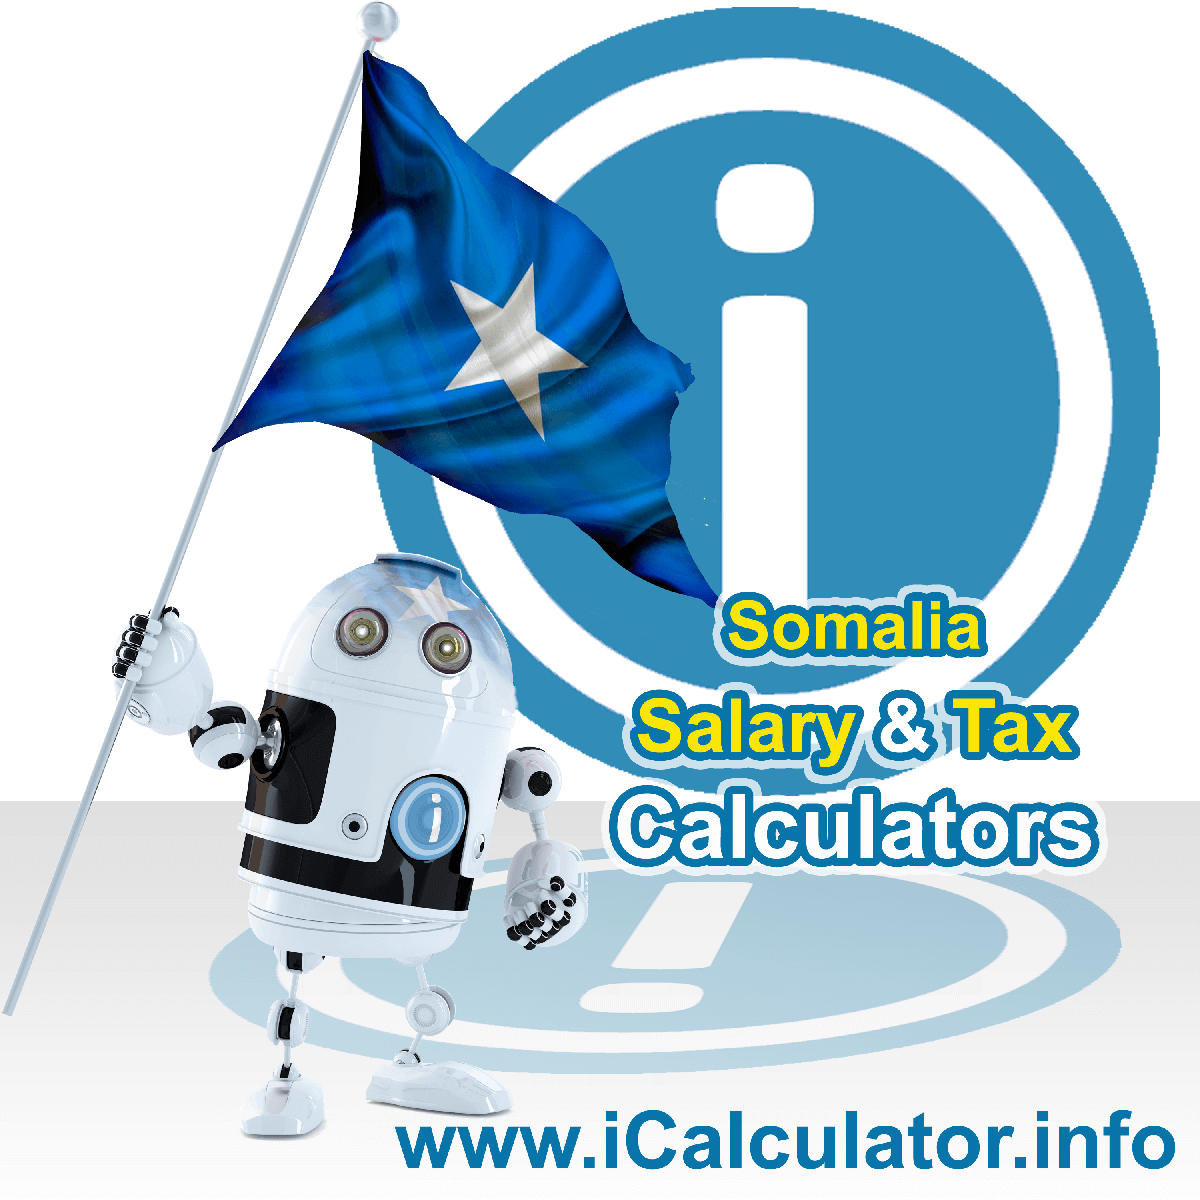 Somalia Wage Calculator. This image shows the Somalia flag and information relating to the tax formula for the Somalia Tax Calculator